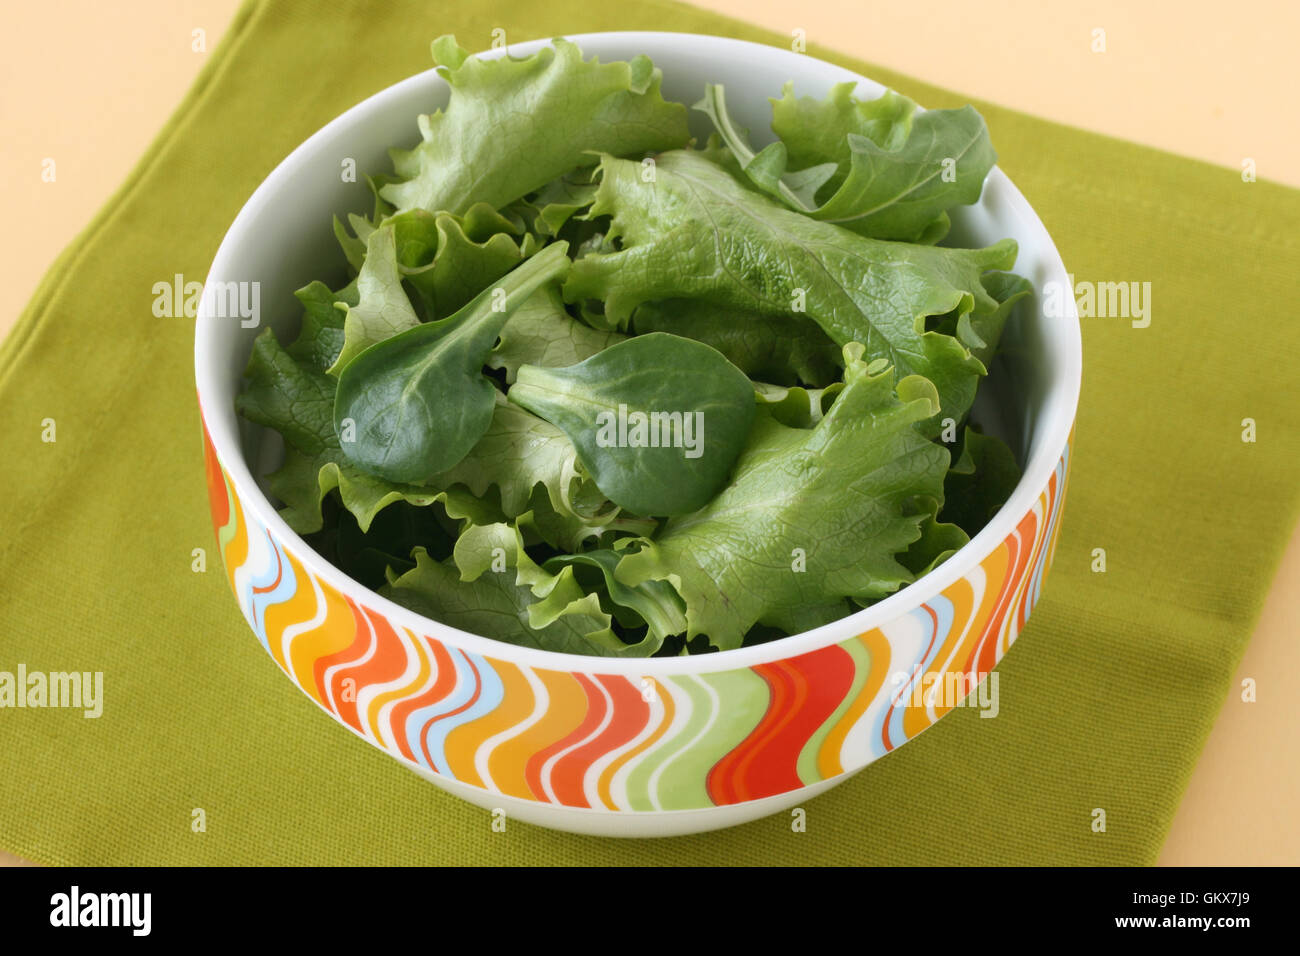 salad in the bowl - Stock Image